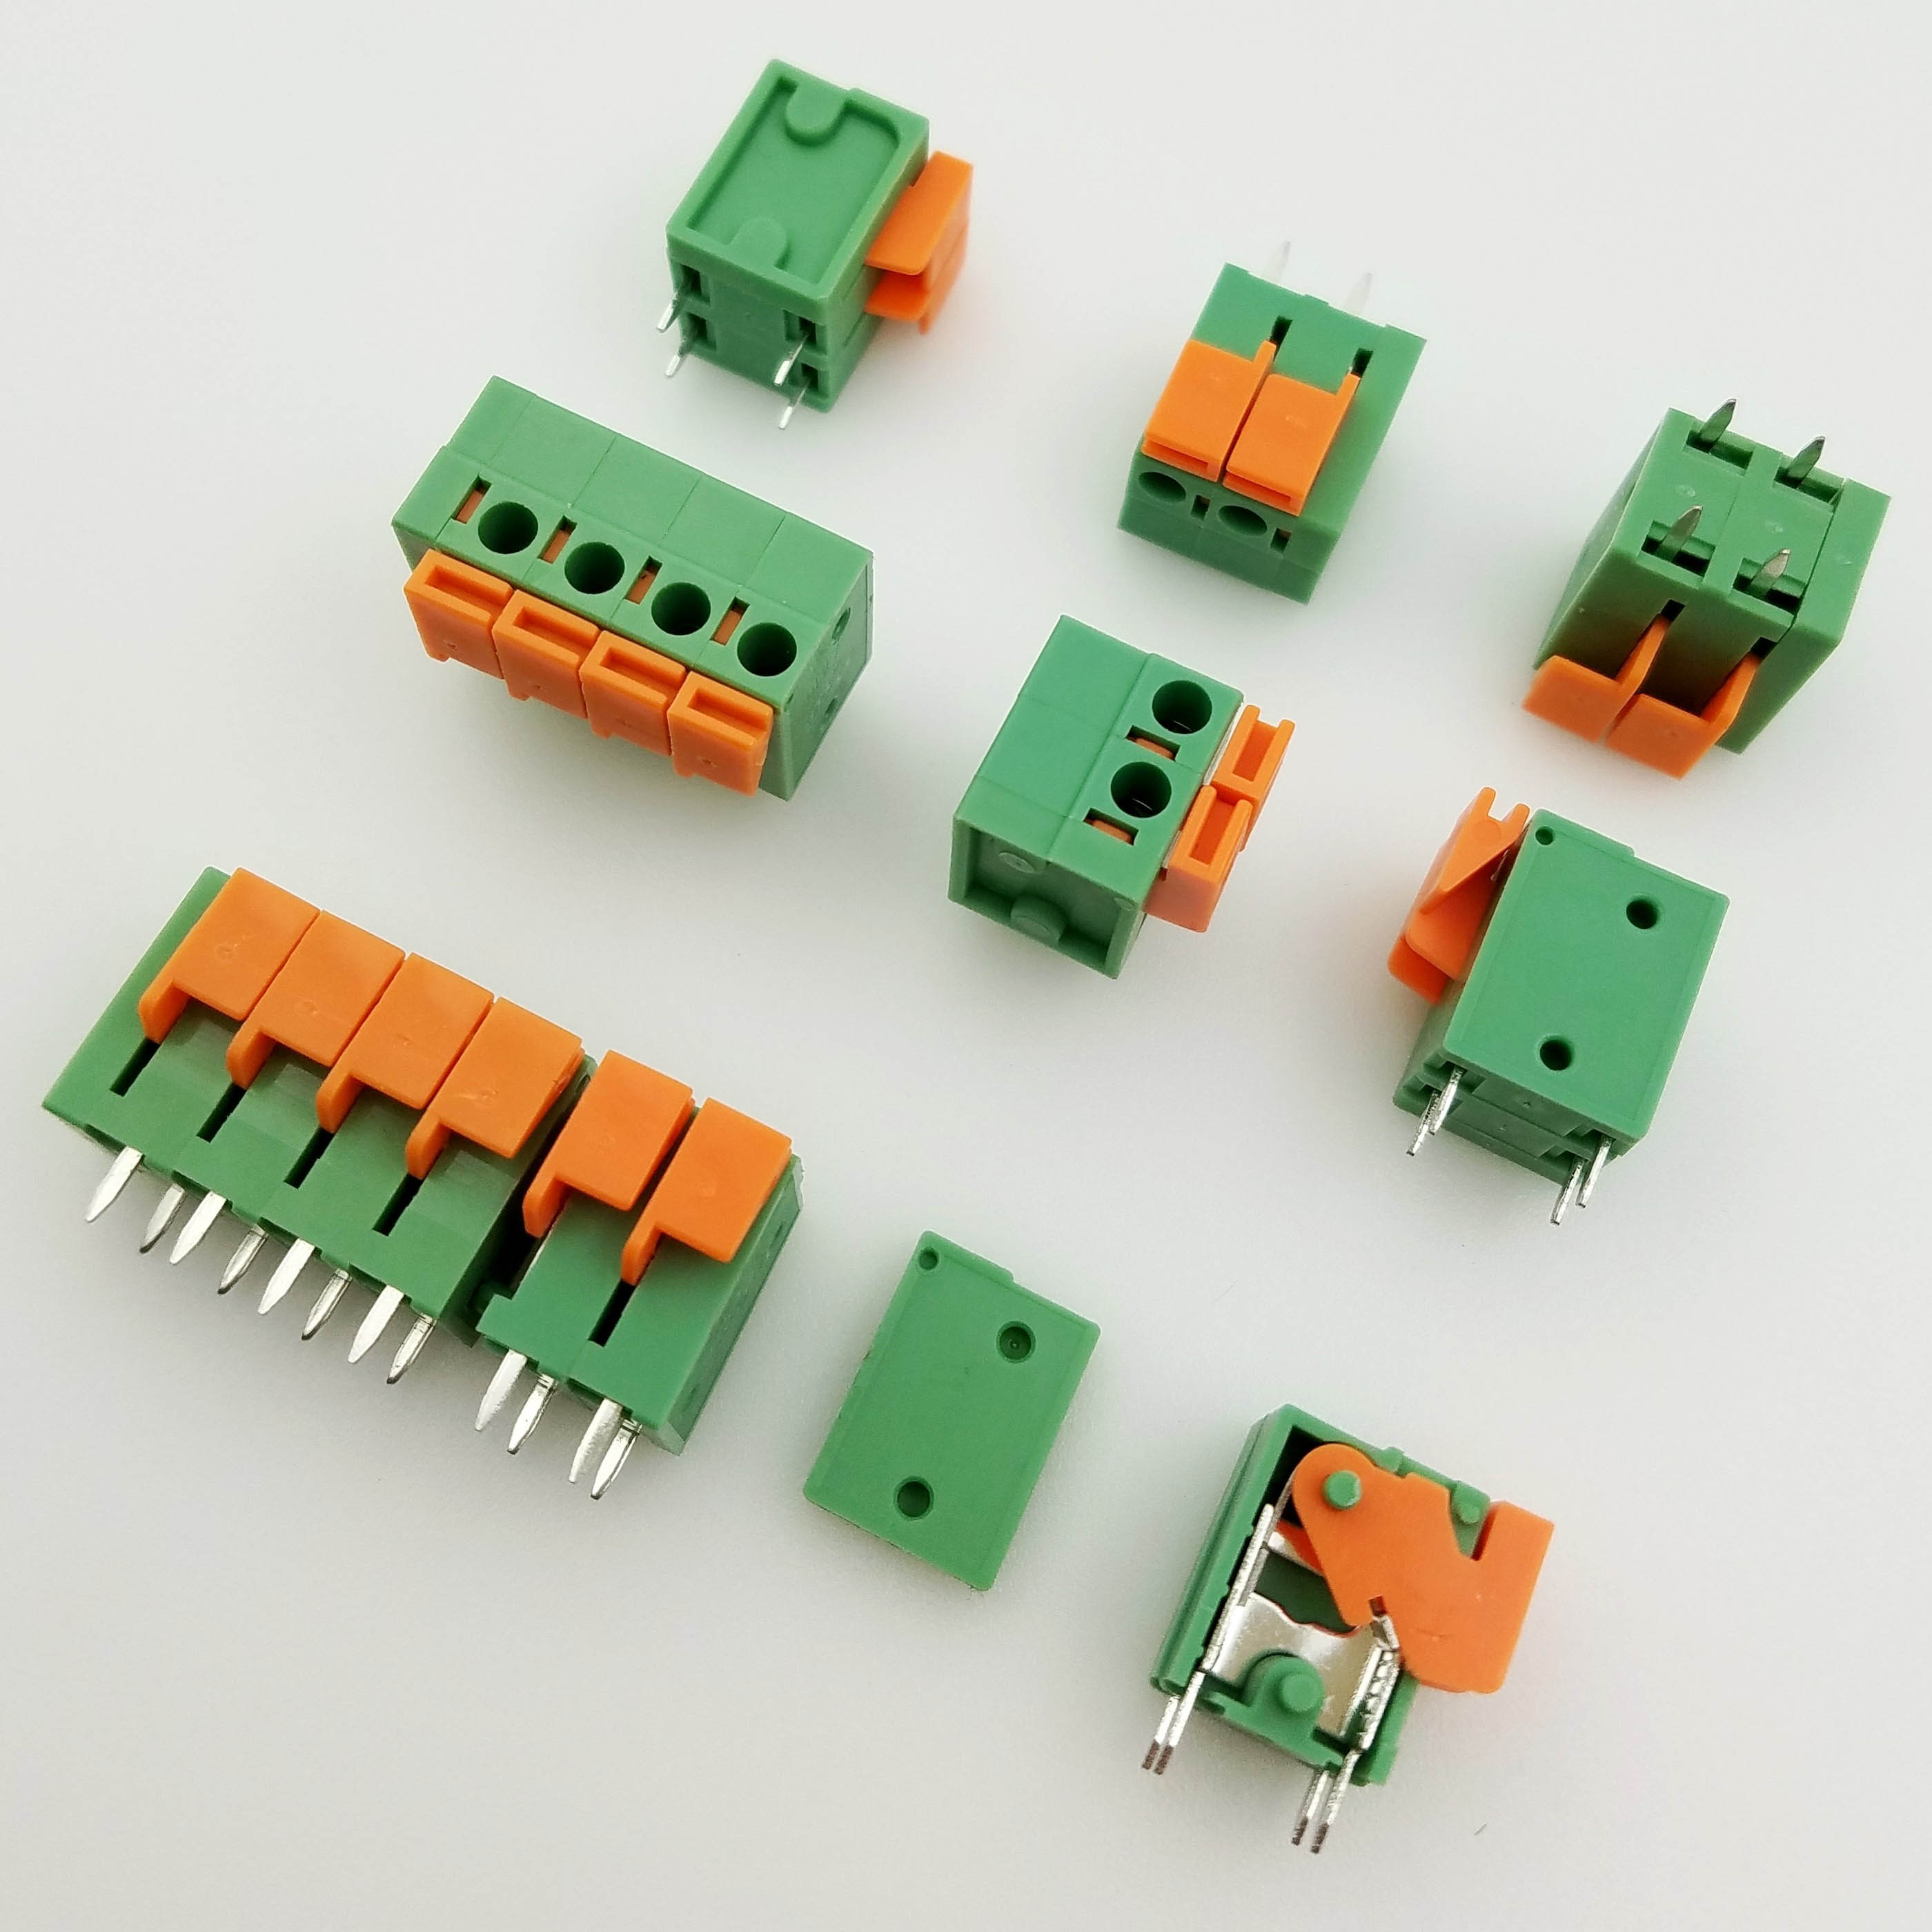 100pcs KF142V 5.08mm PCB Spring Terminal Block KF128-5.08 2P 3P 4P 5P 6P 7p 8p 9p 10p Terminals Connector PCB Mounted Screw вафельница bomann wa 5018 cb weis